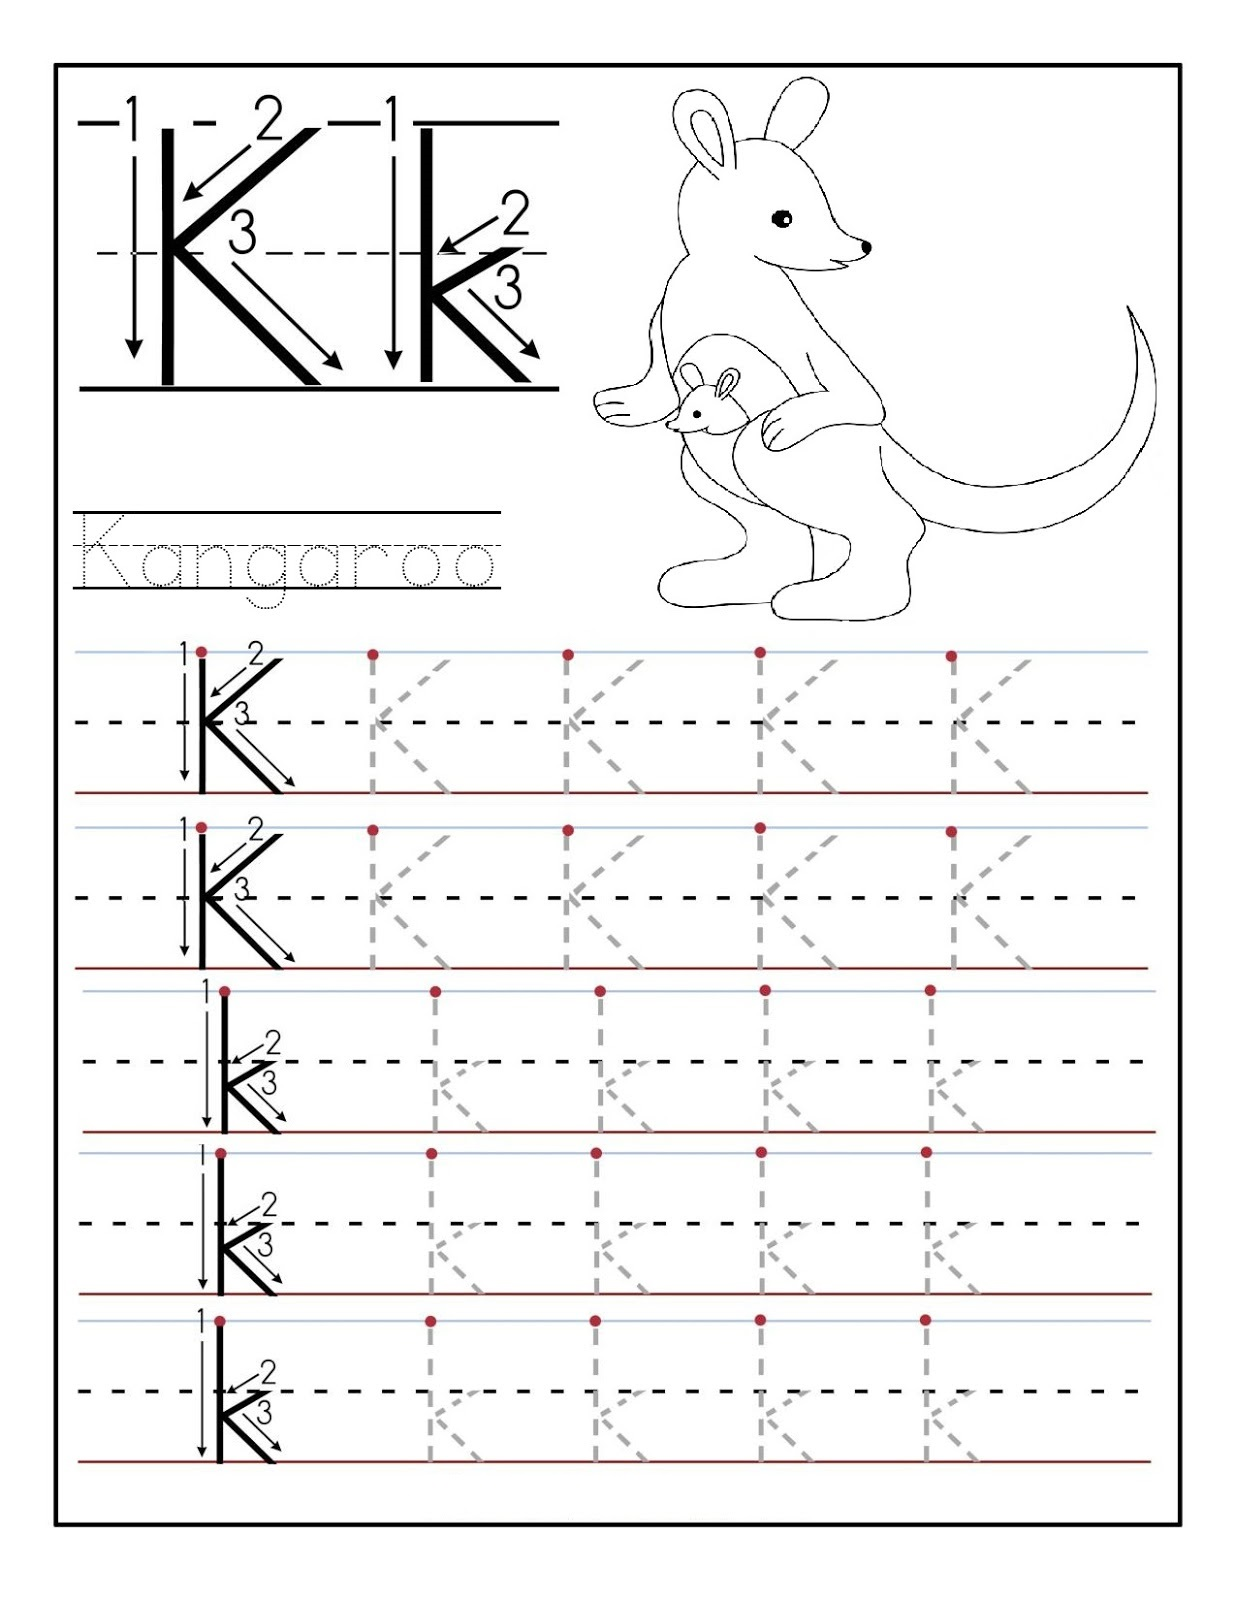 learning to write alphabet templates - printable letter k tracing worksheets for kindergarten